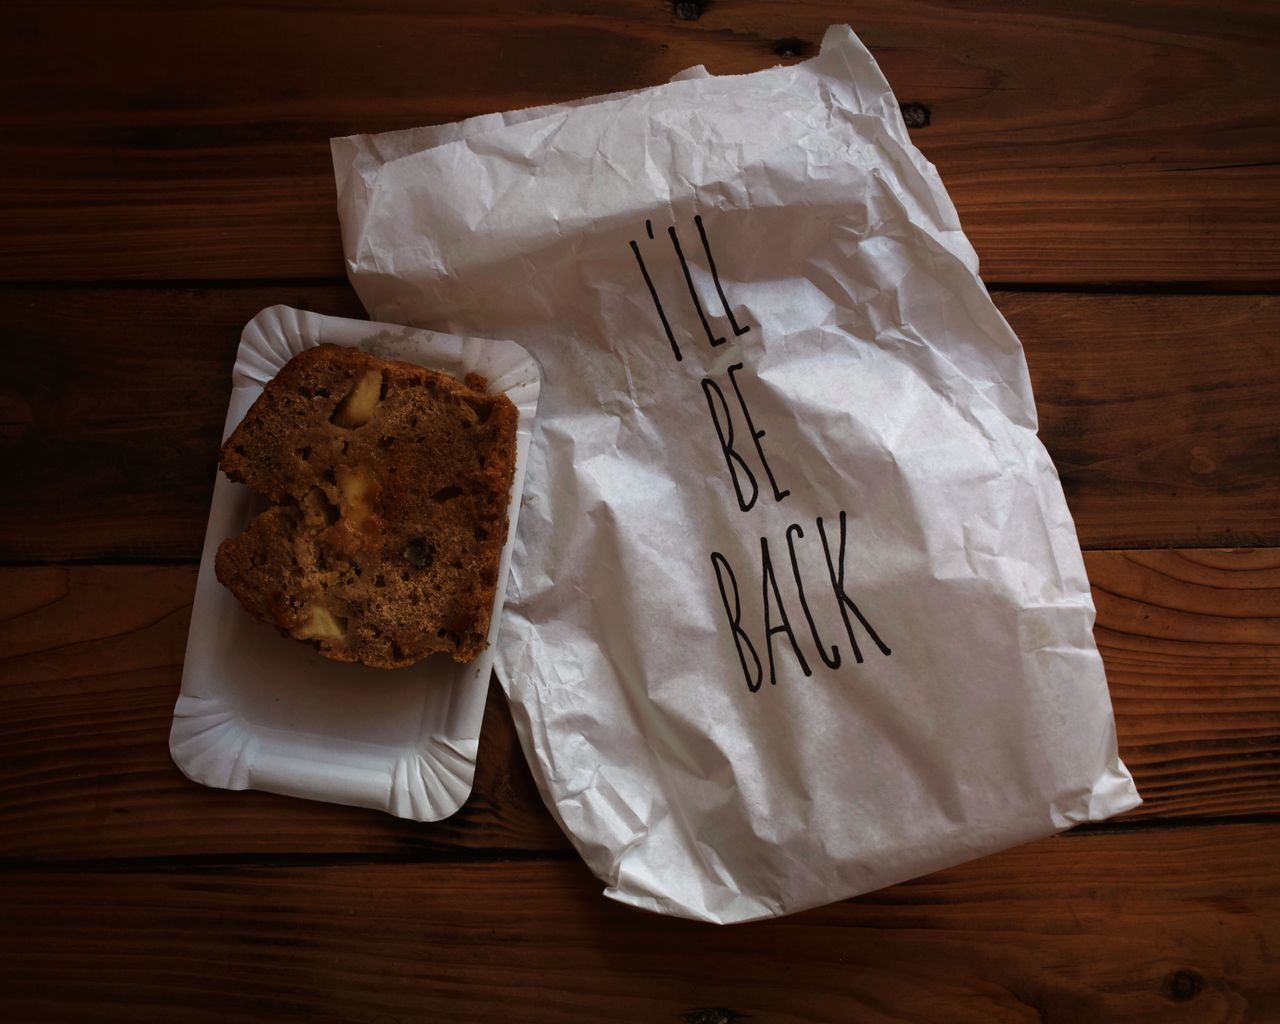 The I'll be back bag. High Angle View Paper Indoors  No People Food Food And Drink Tissue Tissue Paper Close-up Freshness Day Ready-to-eat Cake Bag Dessert Cake Time Lettering Letters Writing Font Handwriting  Coffee Time